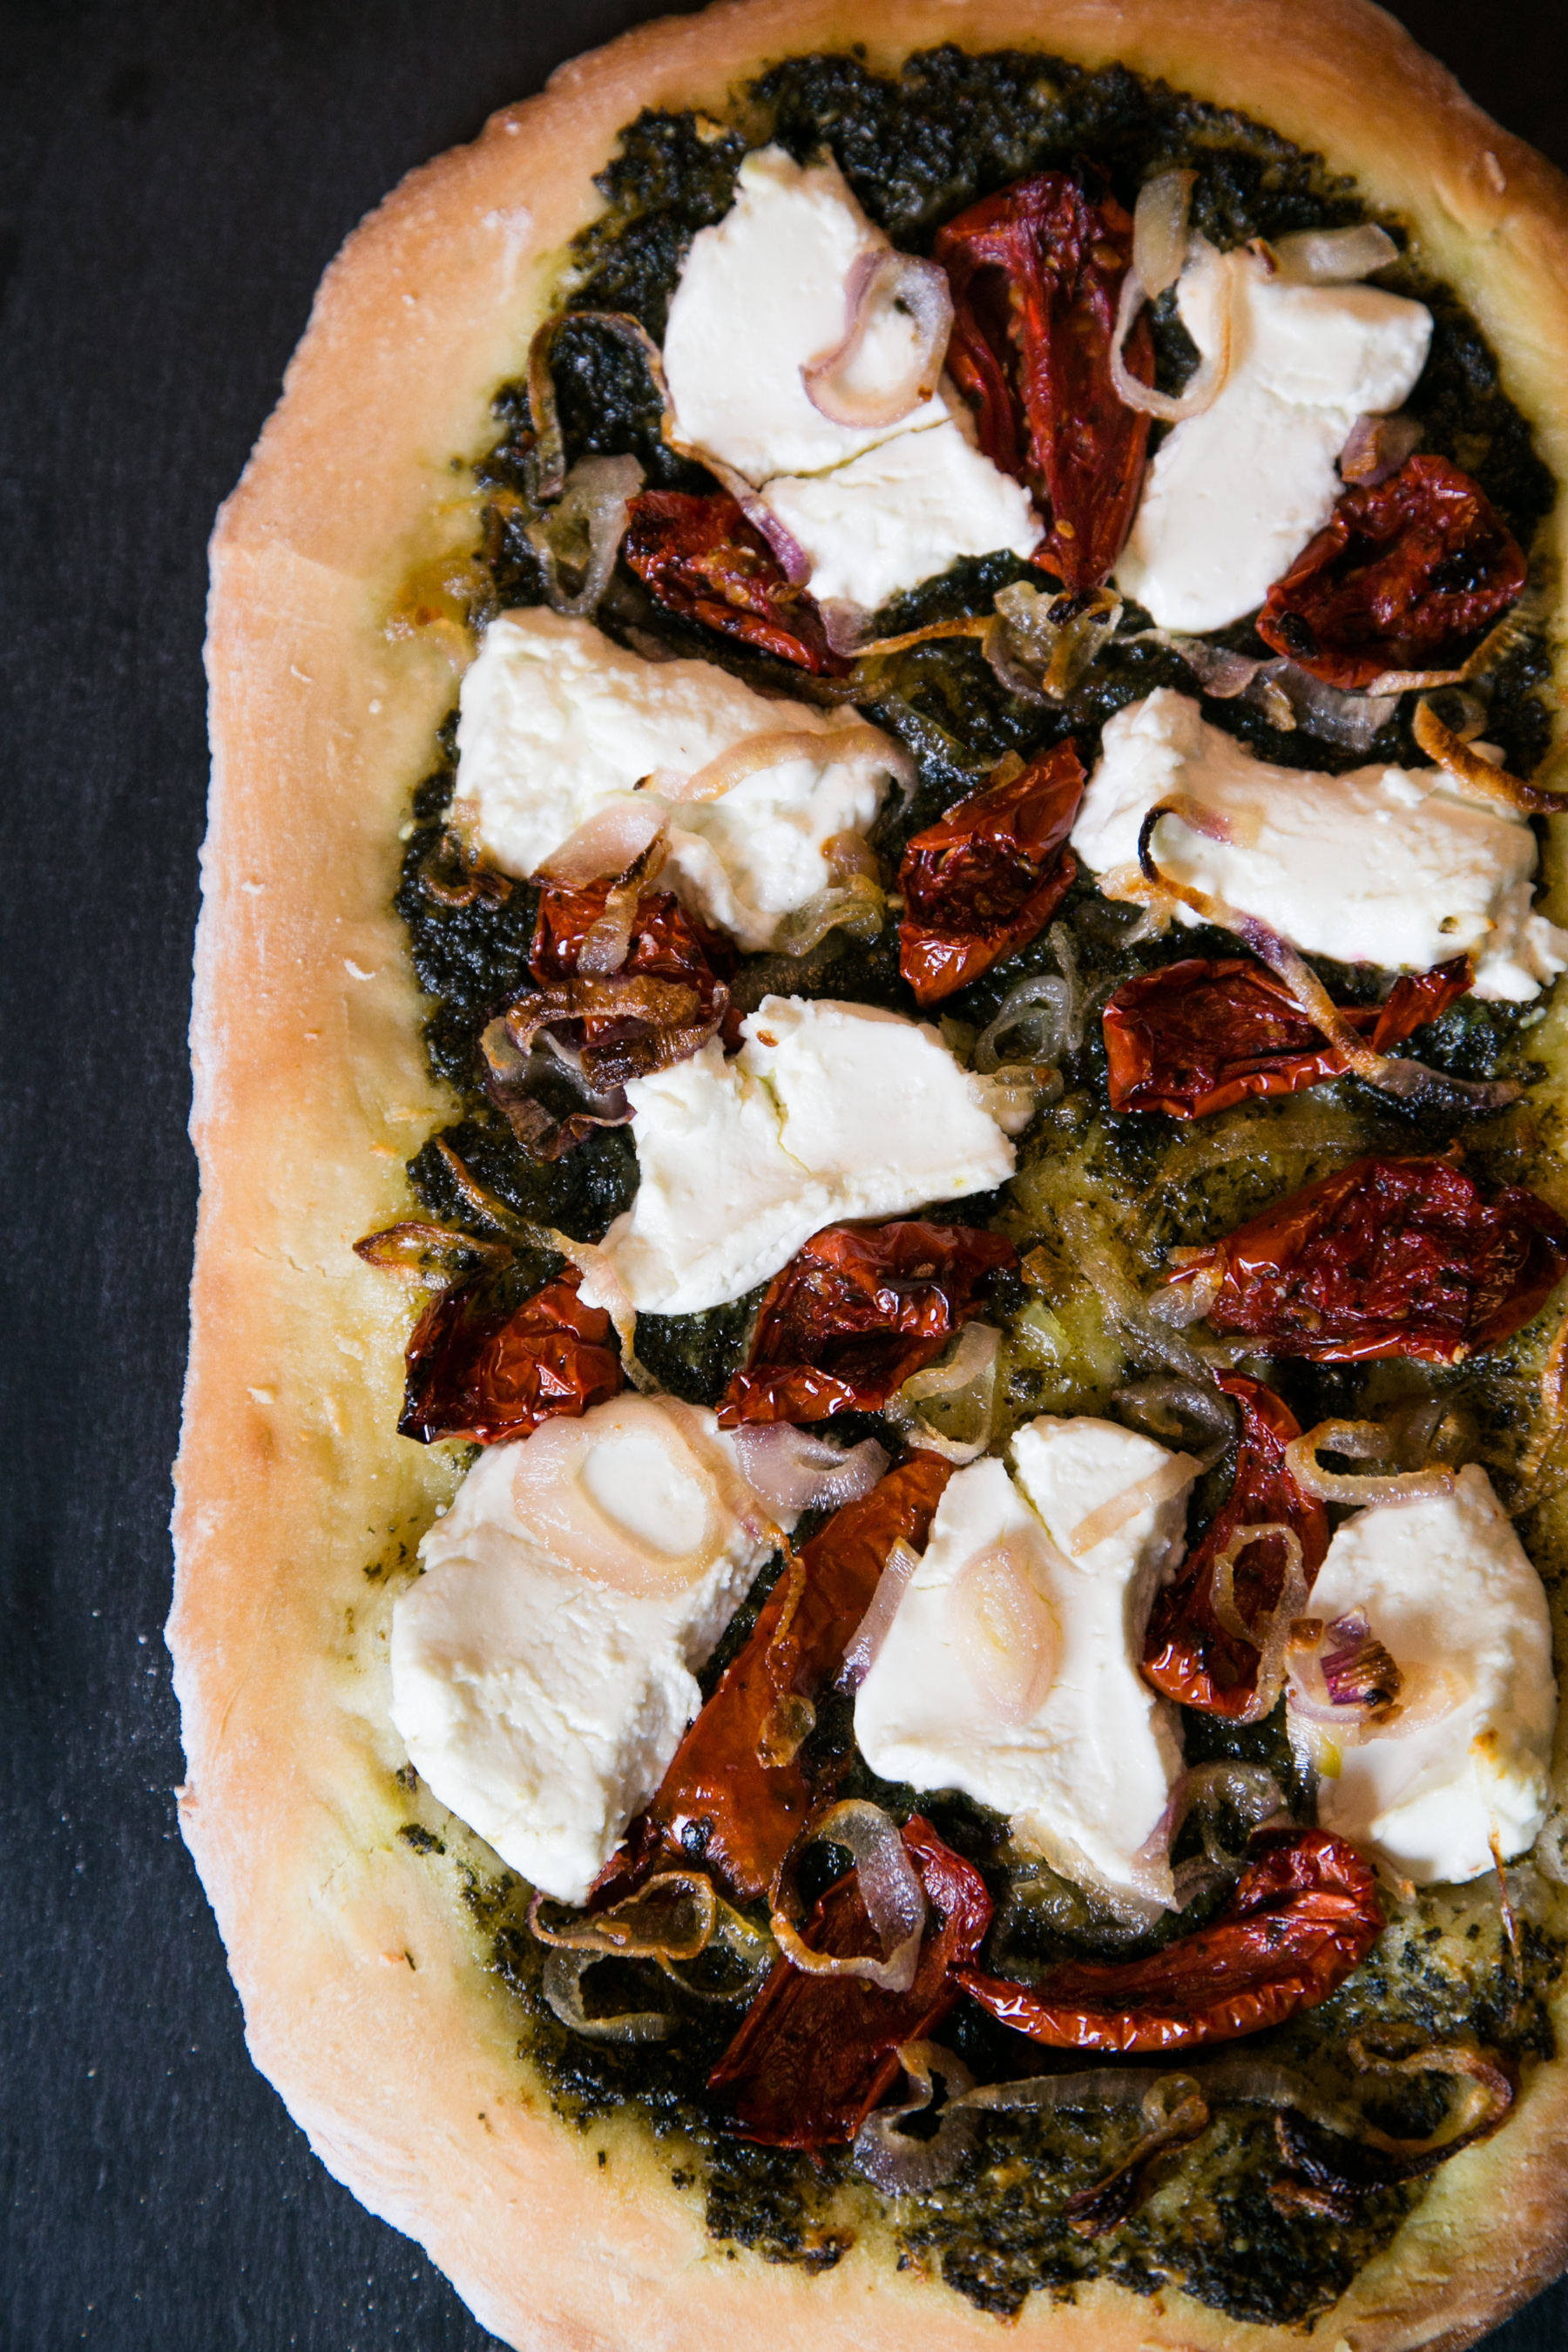 Beet Greens Pesto Pizza with Caramelized Shallots, Goat Cheese and Roasted Tomato